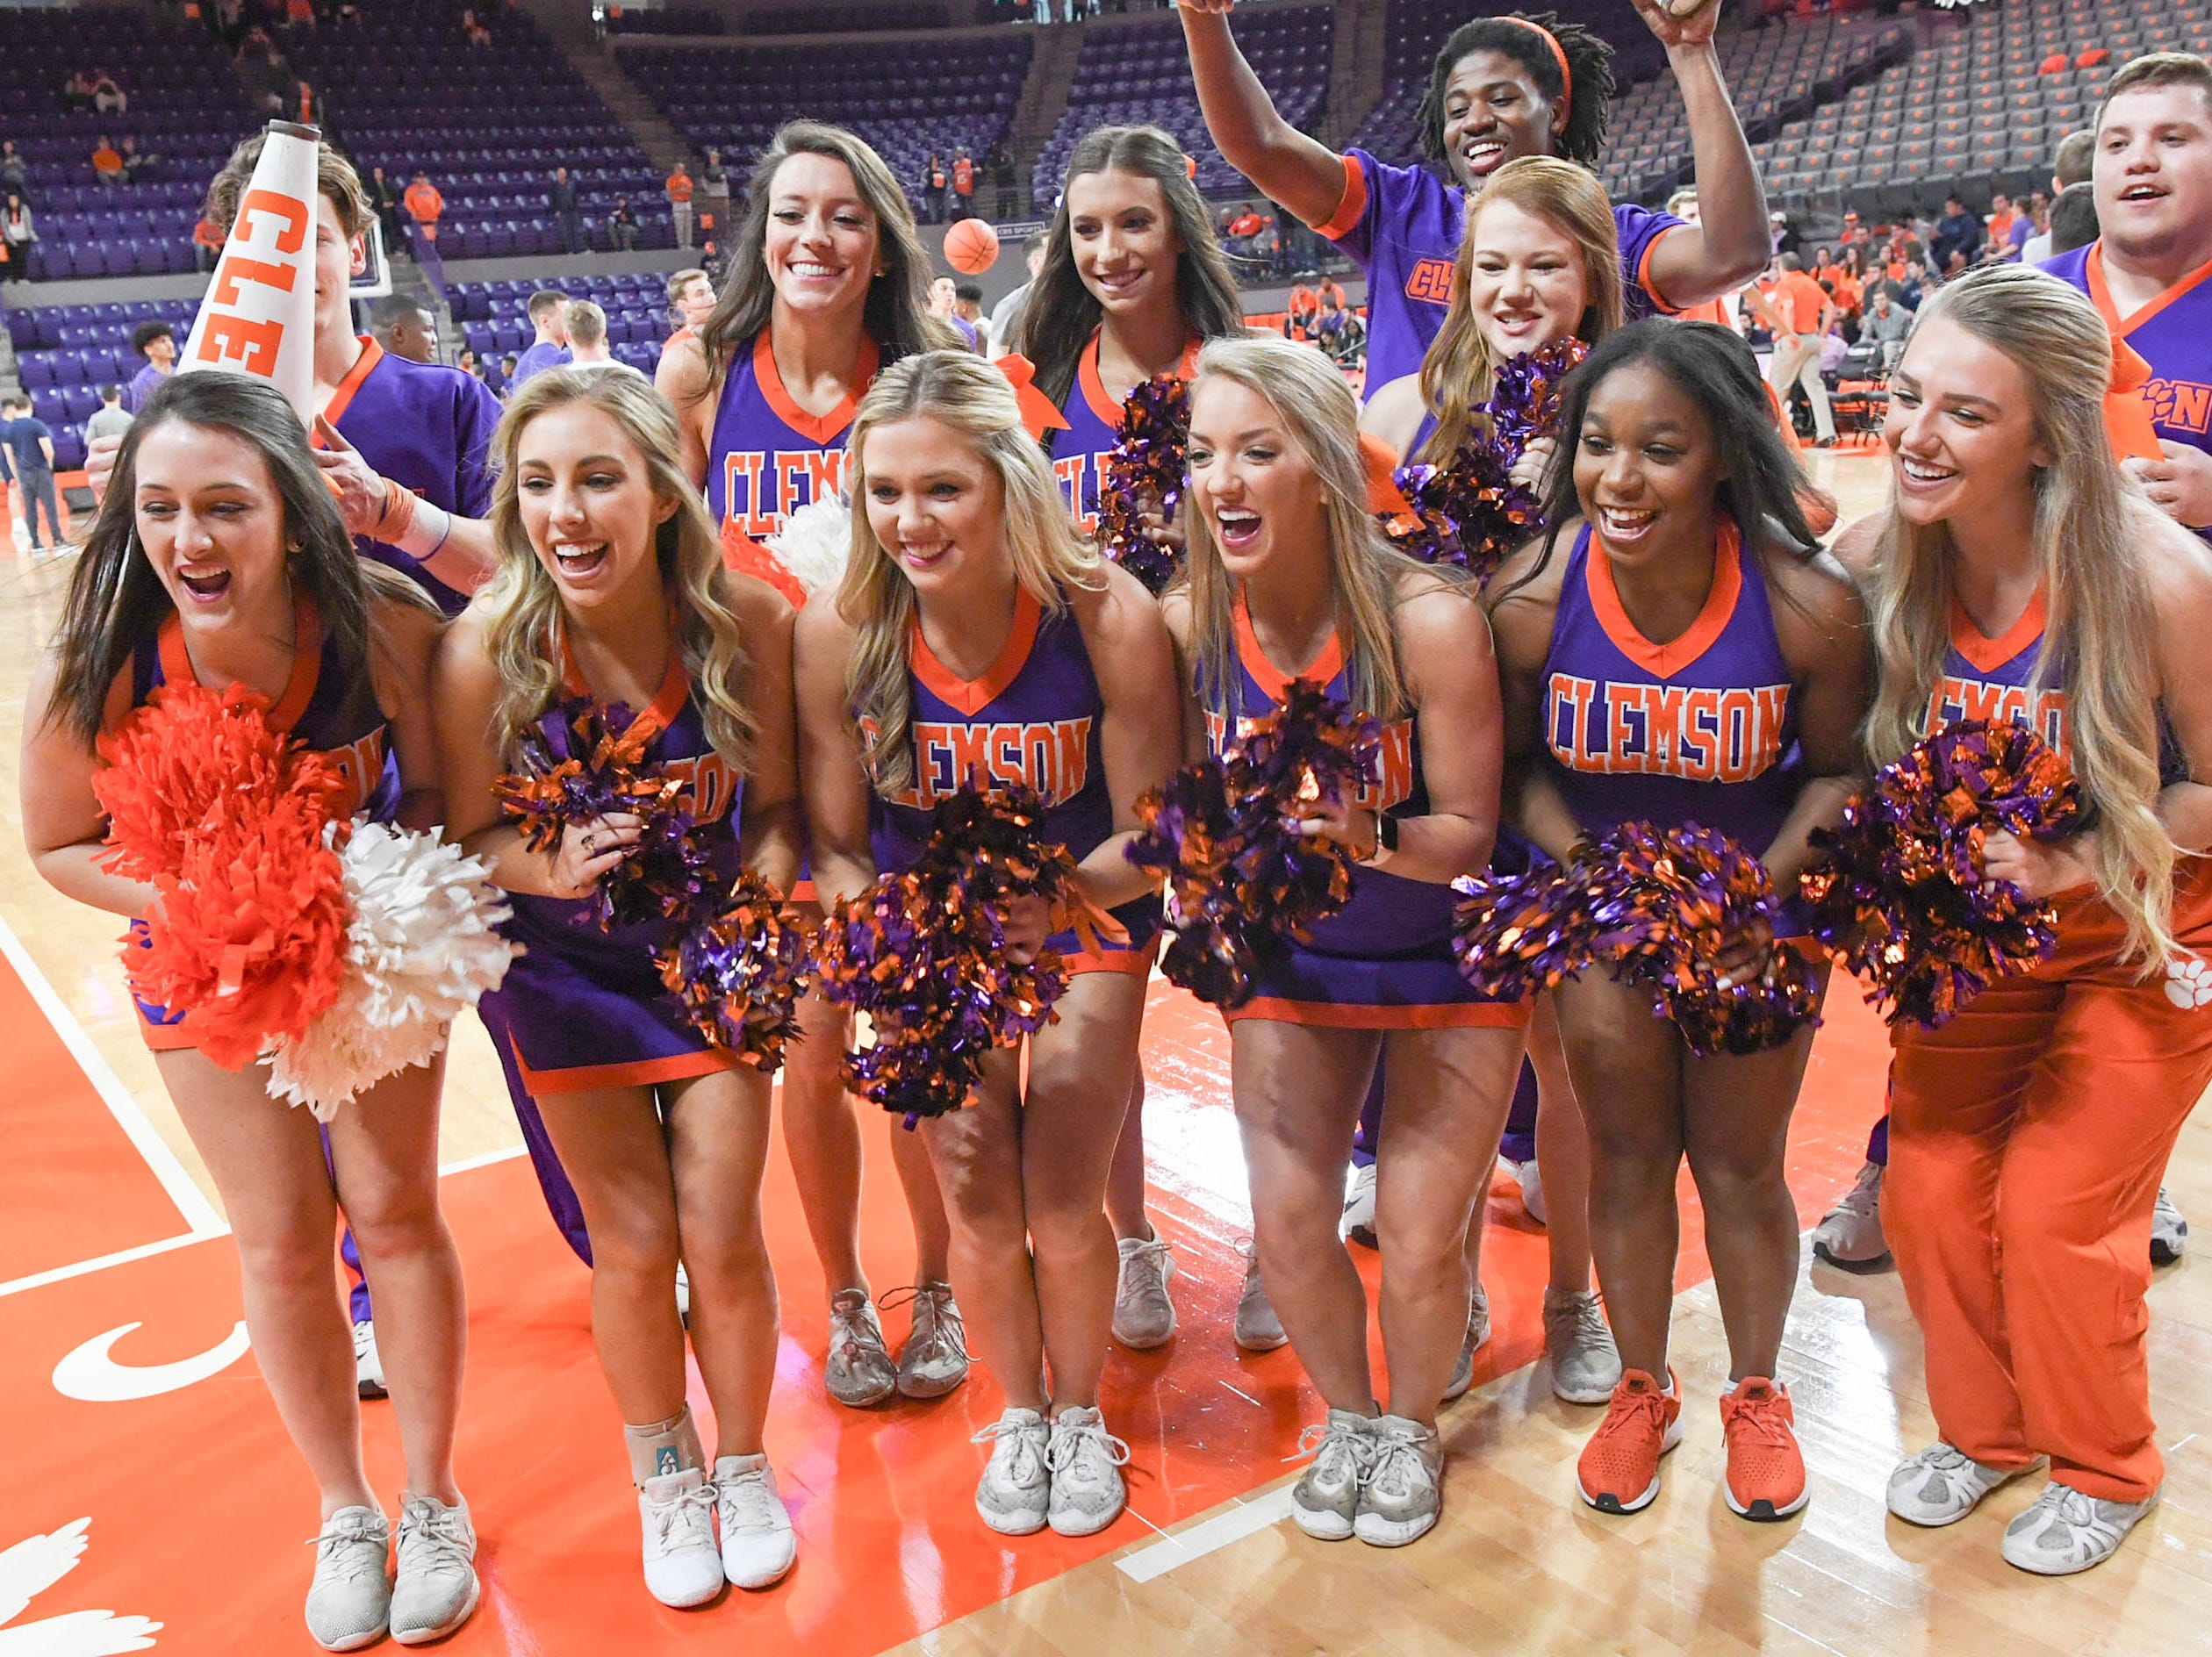 Clemson cheerleaders pose during the first half in Littlejohn Coliseum in Clemson Saturday, March 9, 2019.